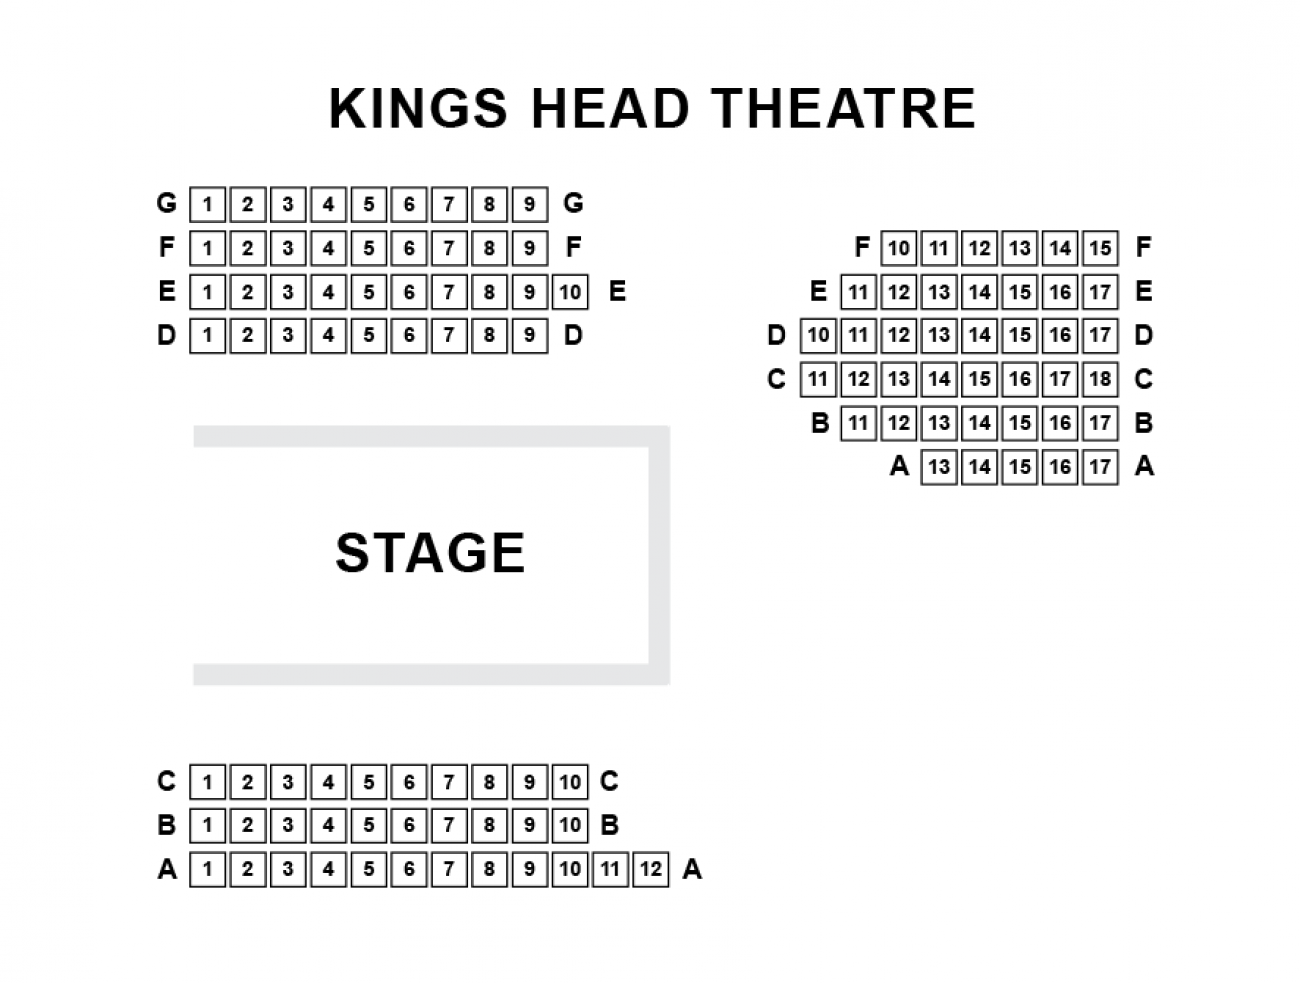 King's Head Theatre Seating plan